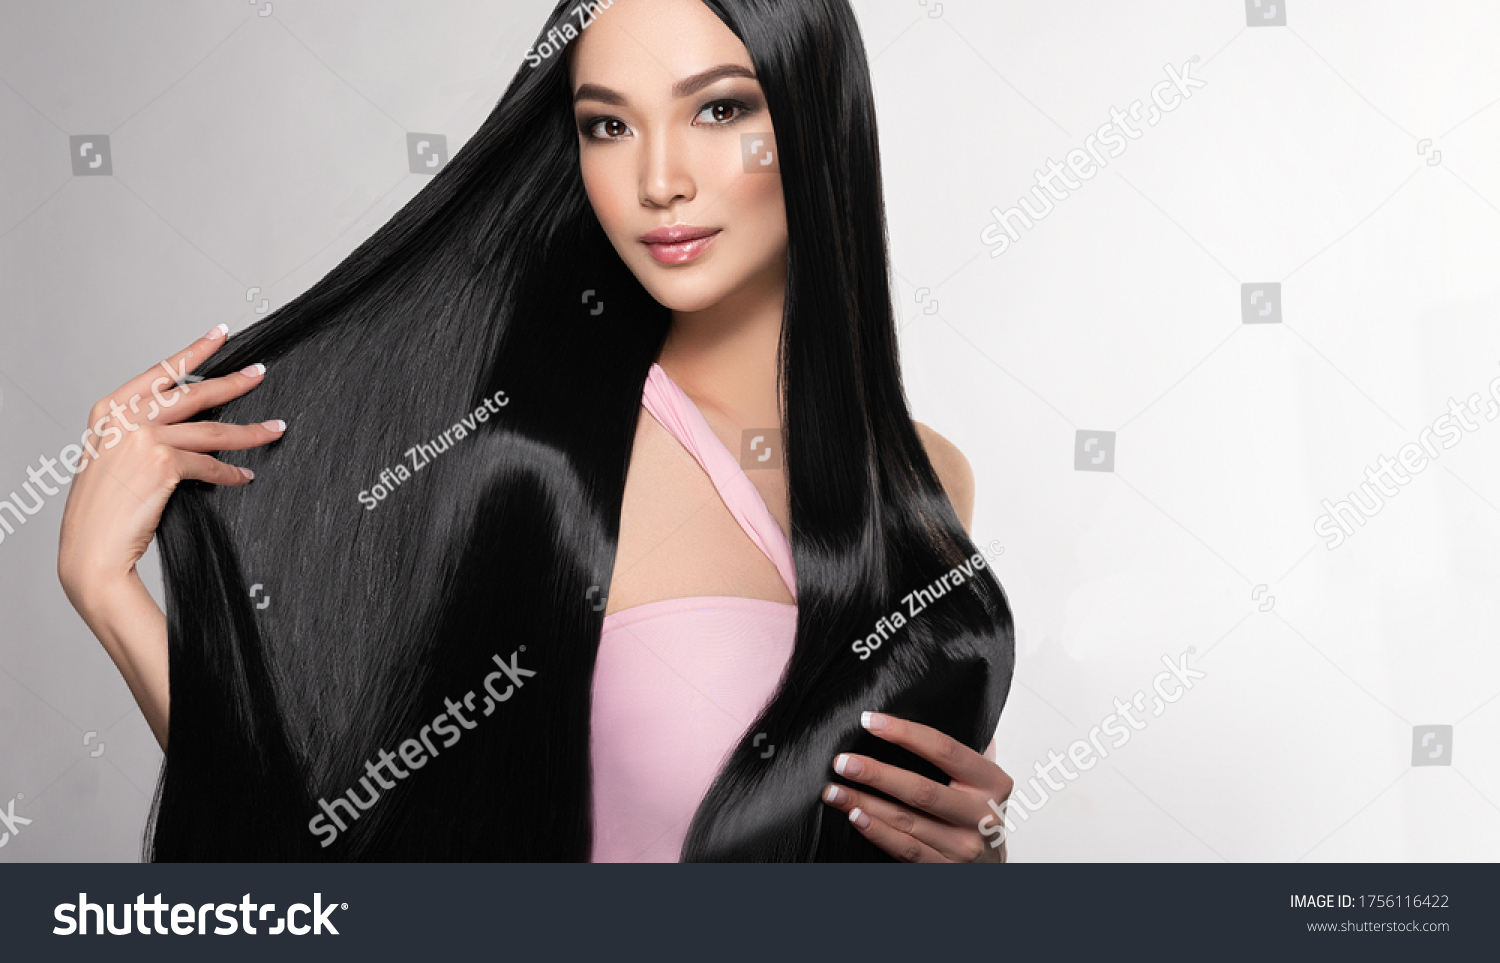 Beautiful asian model girl with shiny black and straight long hair . Keratin straightening . Treatment, care and spa procedures for hair . Chinese girl with smooth hairstyle #1756116422